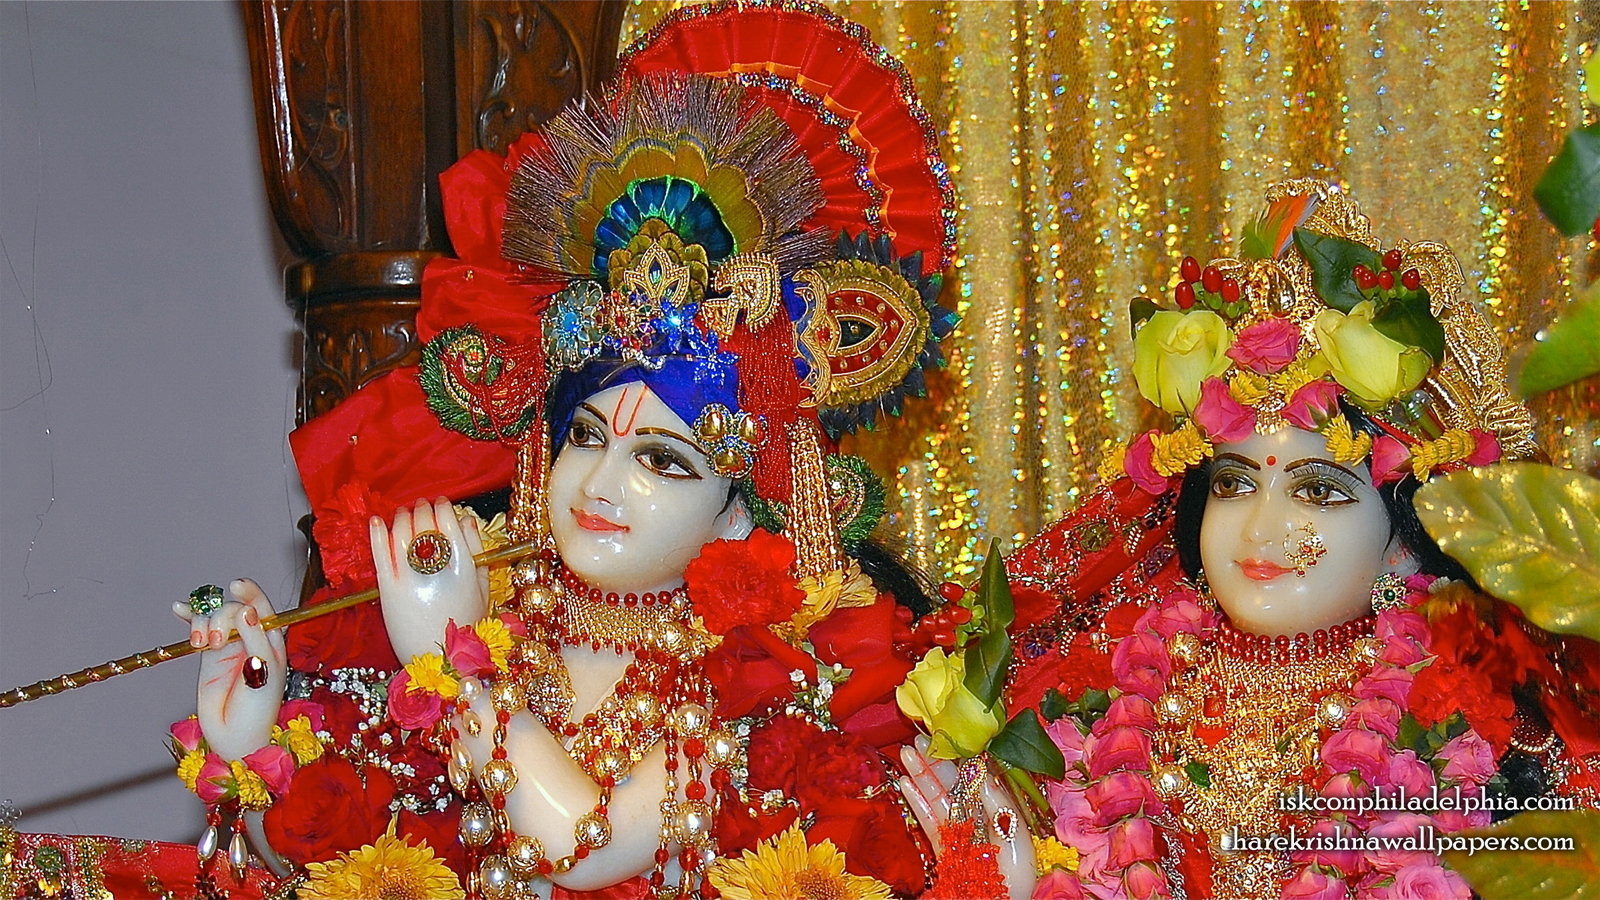 Sri Sri Radha Krishna Close up Wallpaper (009) Size 1600x900 Download